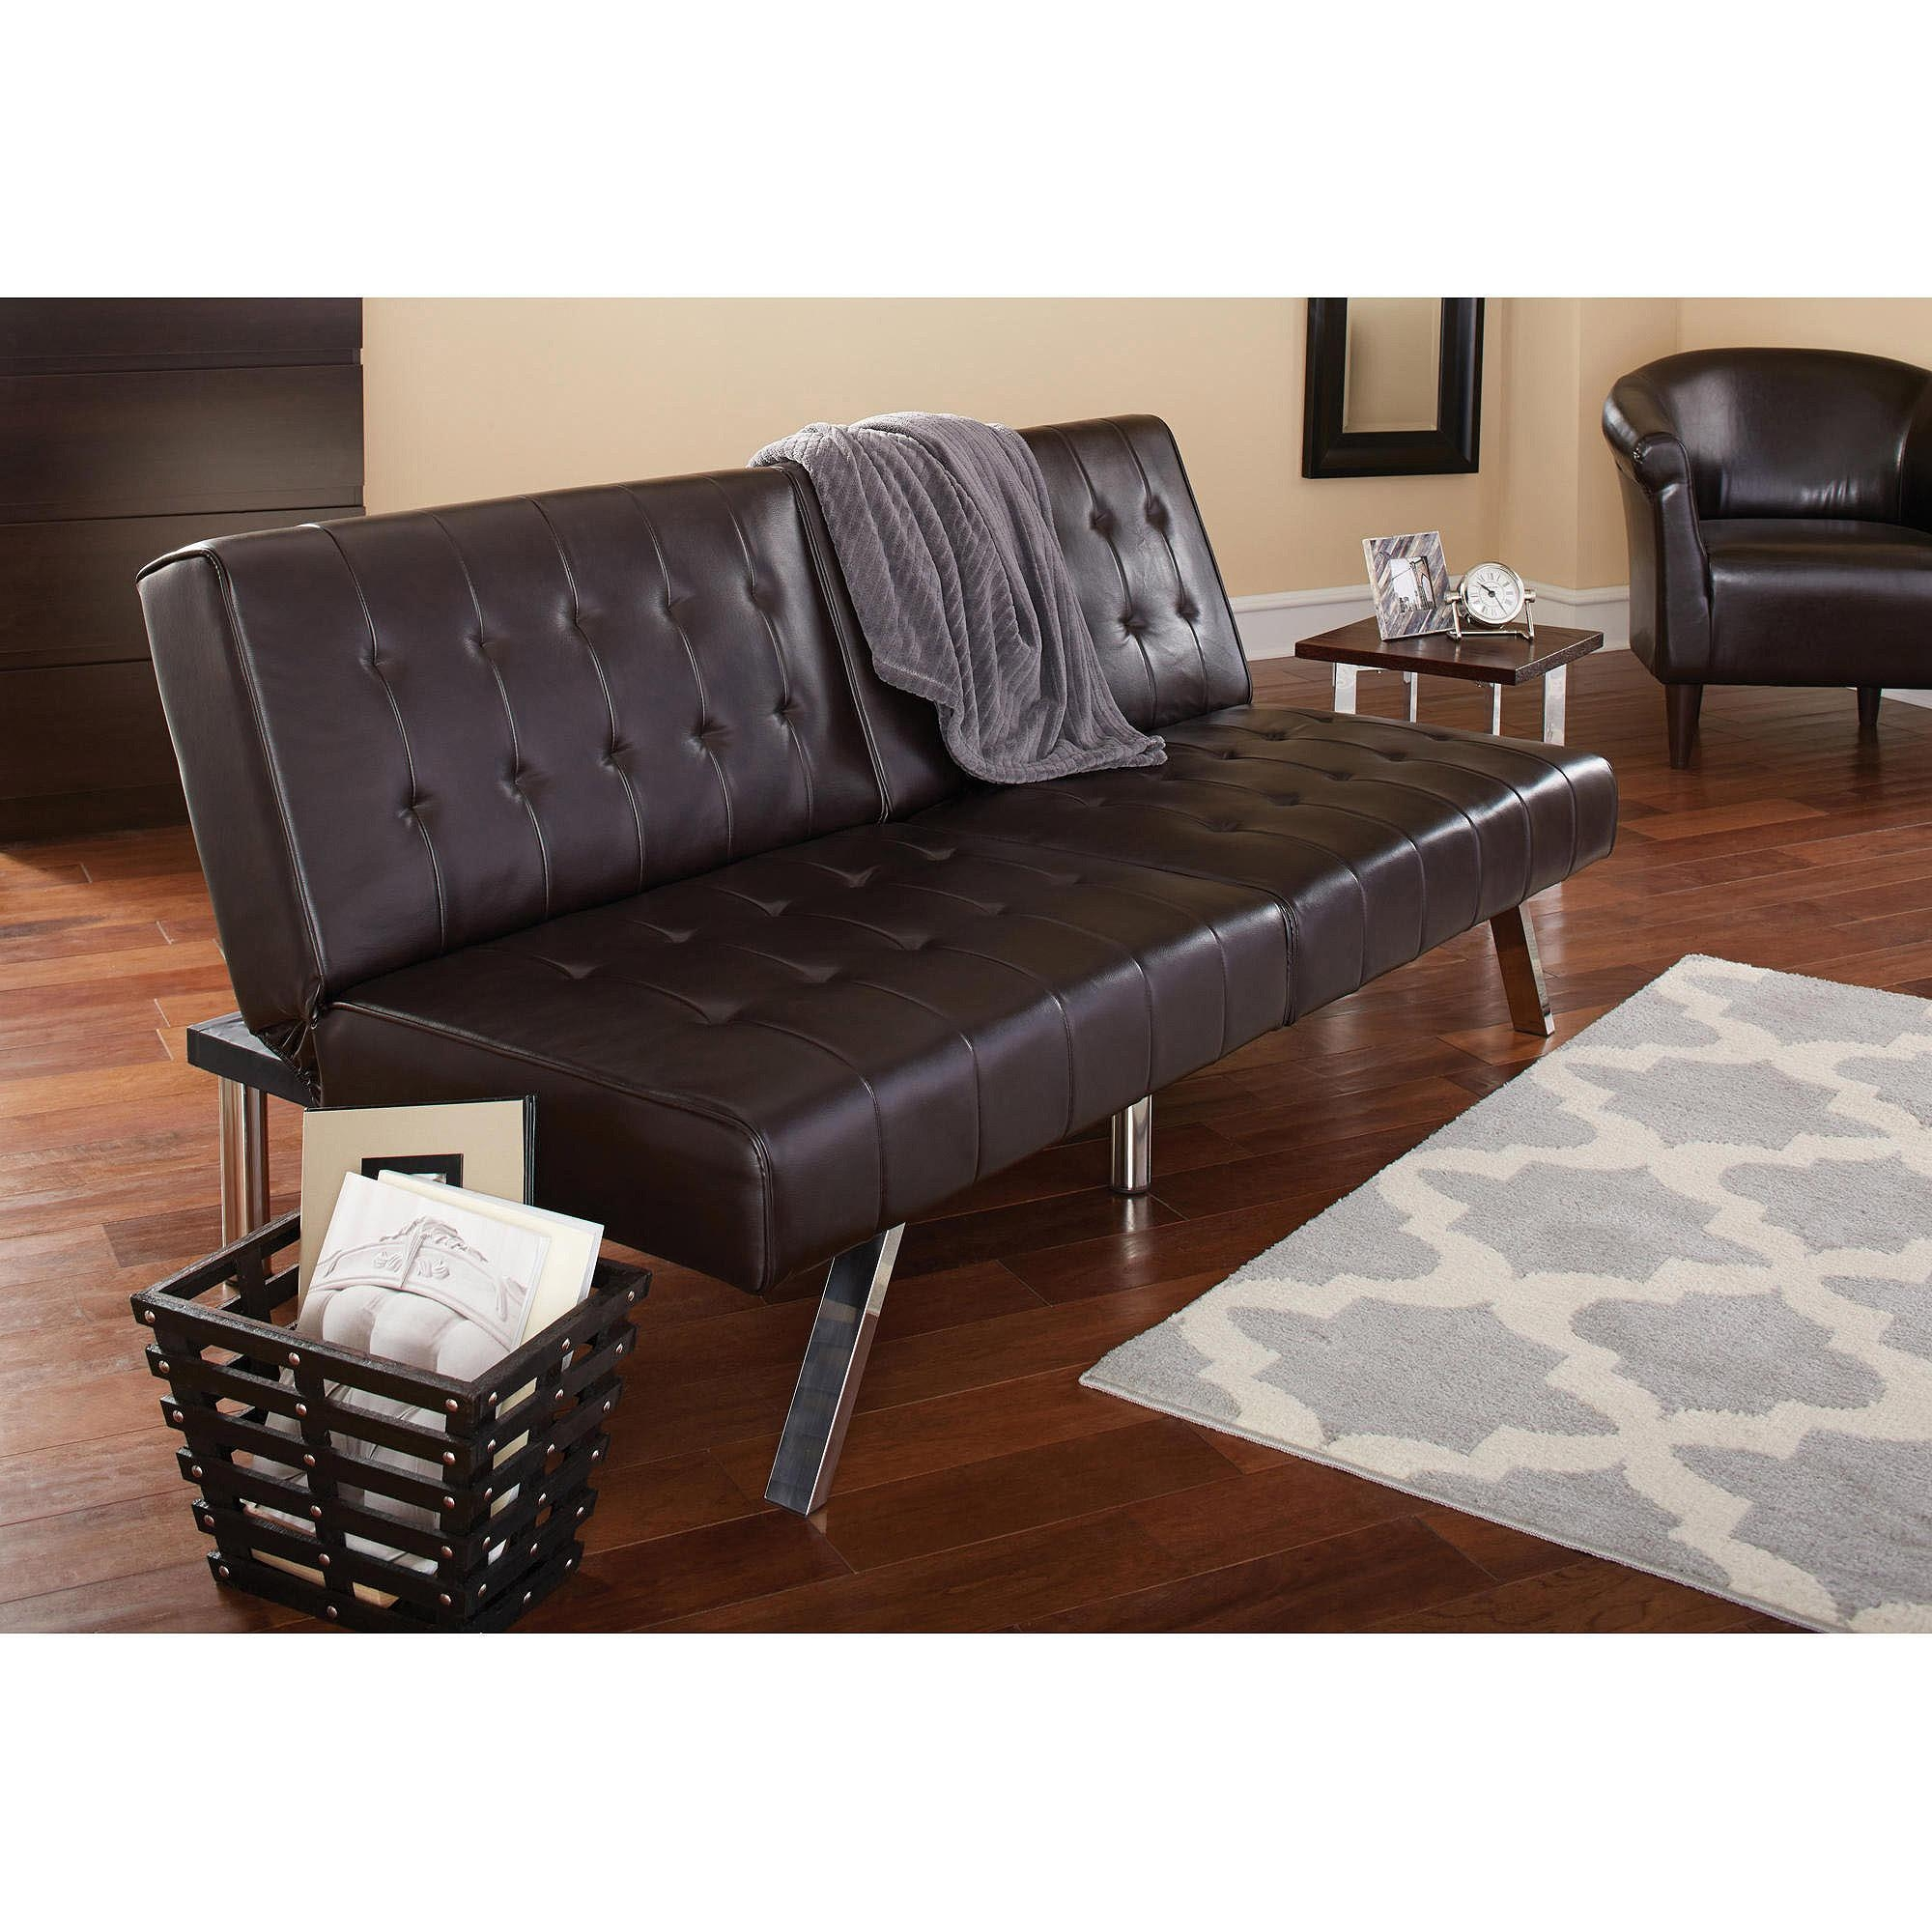 Mainstays Morgan Faux Leather Tufted Convertible Futon, Brown Regarding Leather Fouton Sofas (Image 16 of 20)